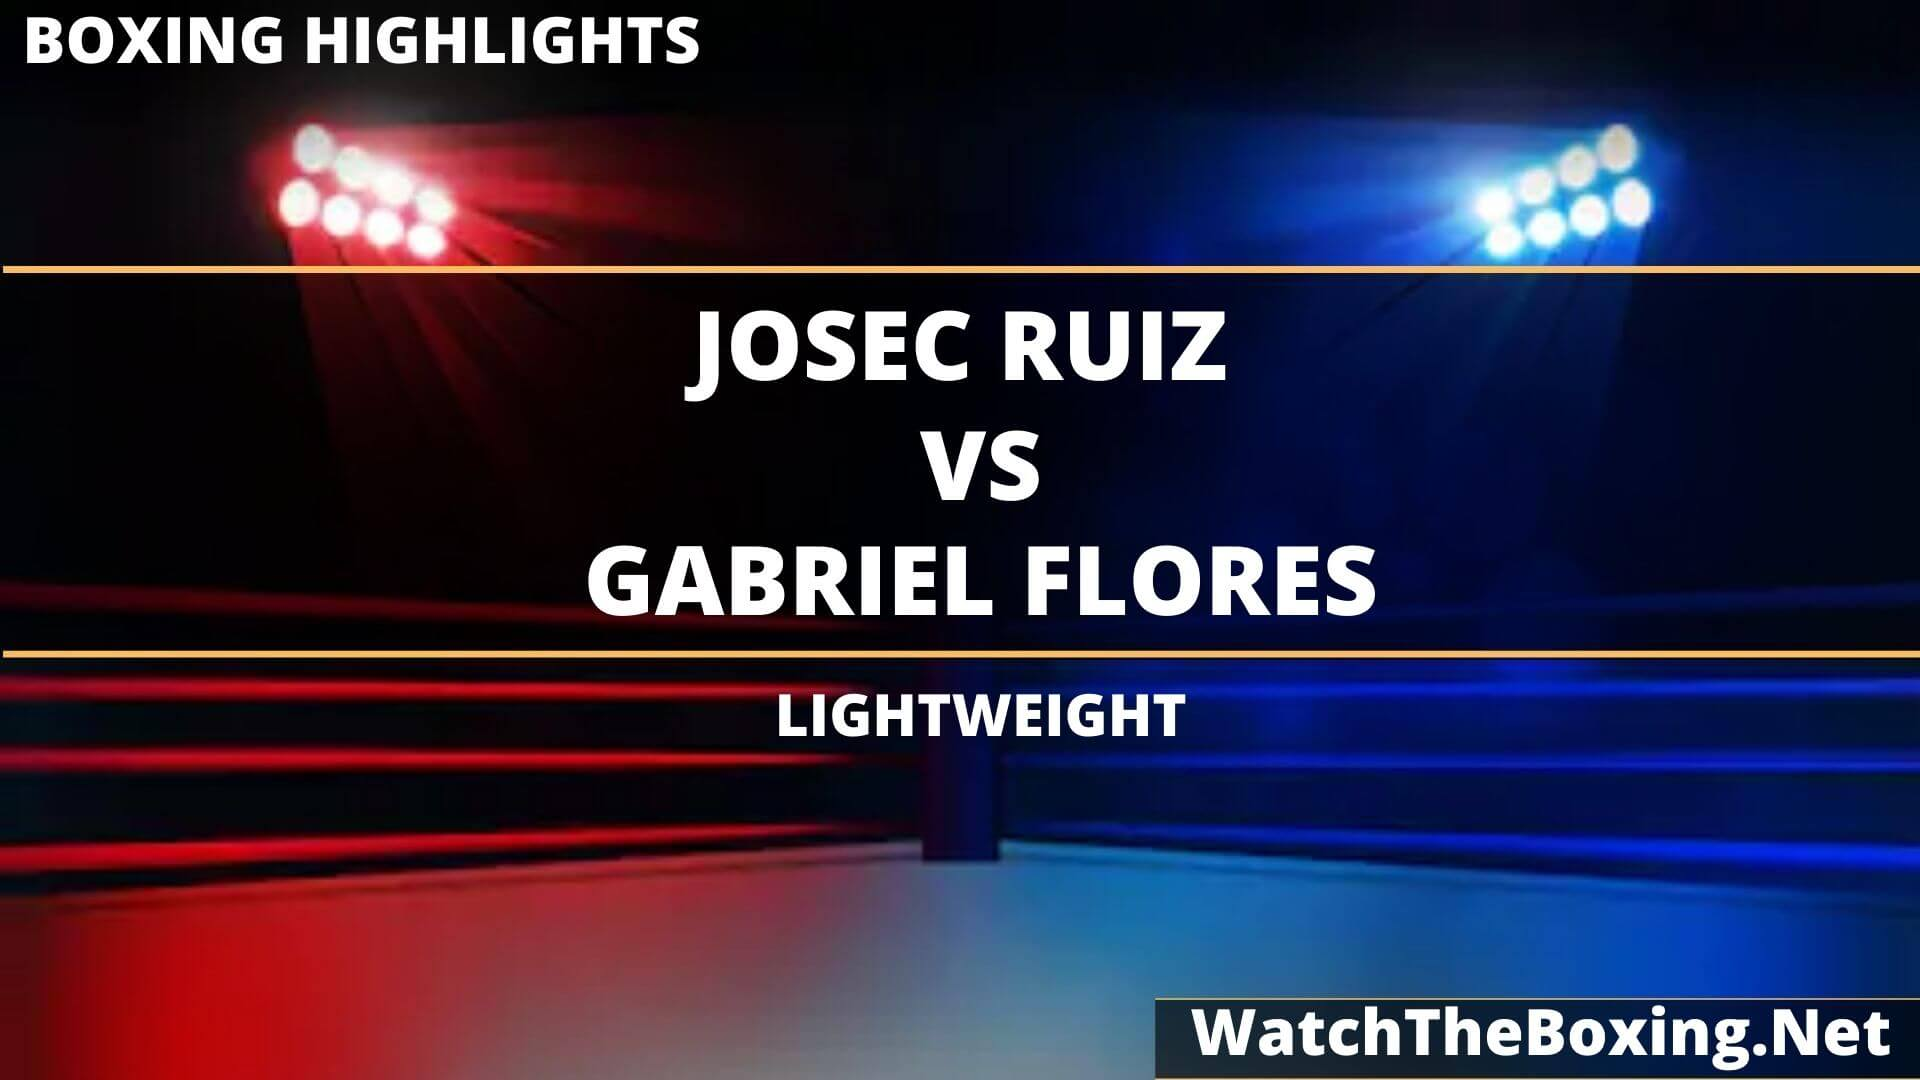 Josec Ruiz Vs Gabriel Flores Highlights 2020 Lightweight